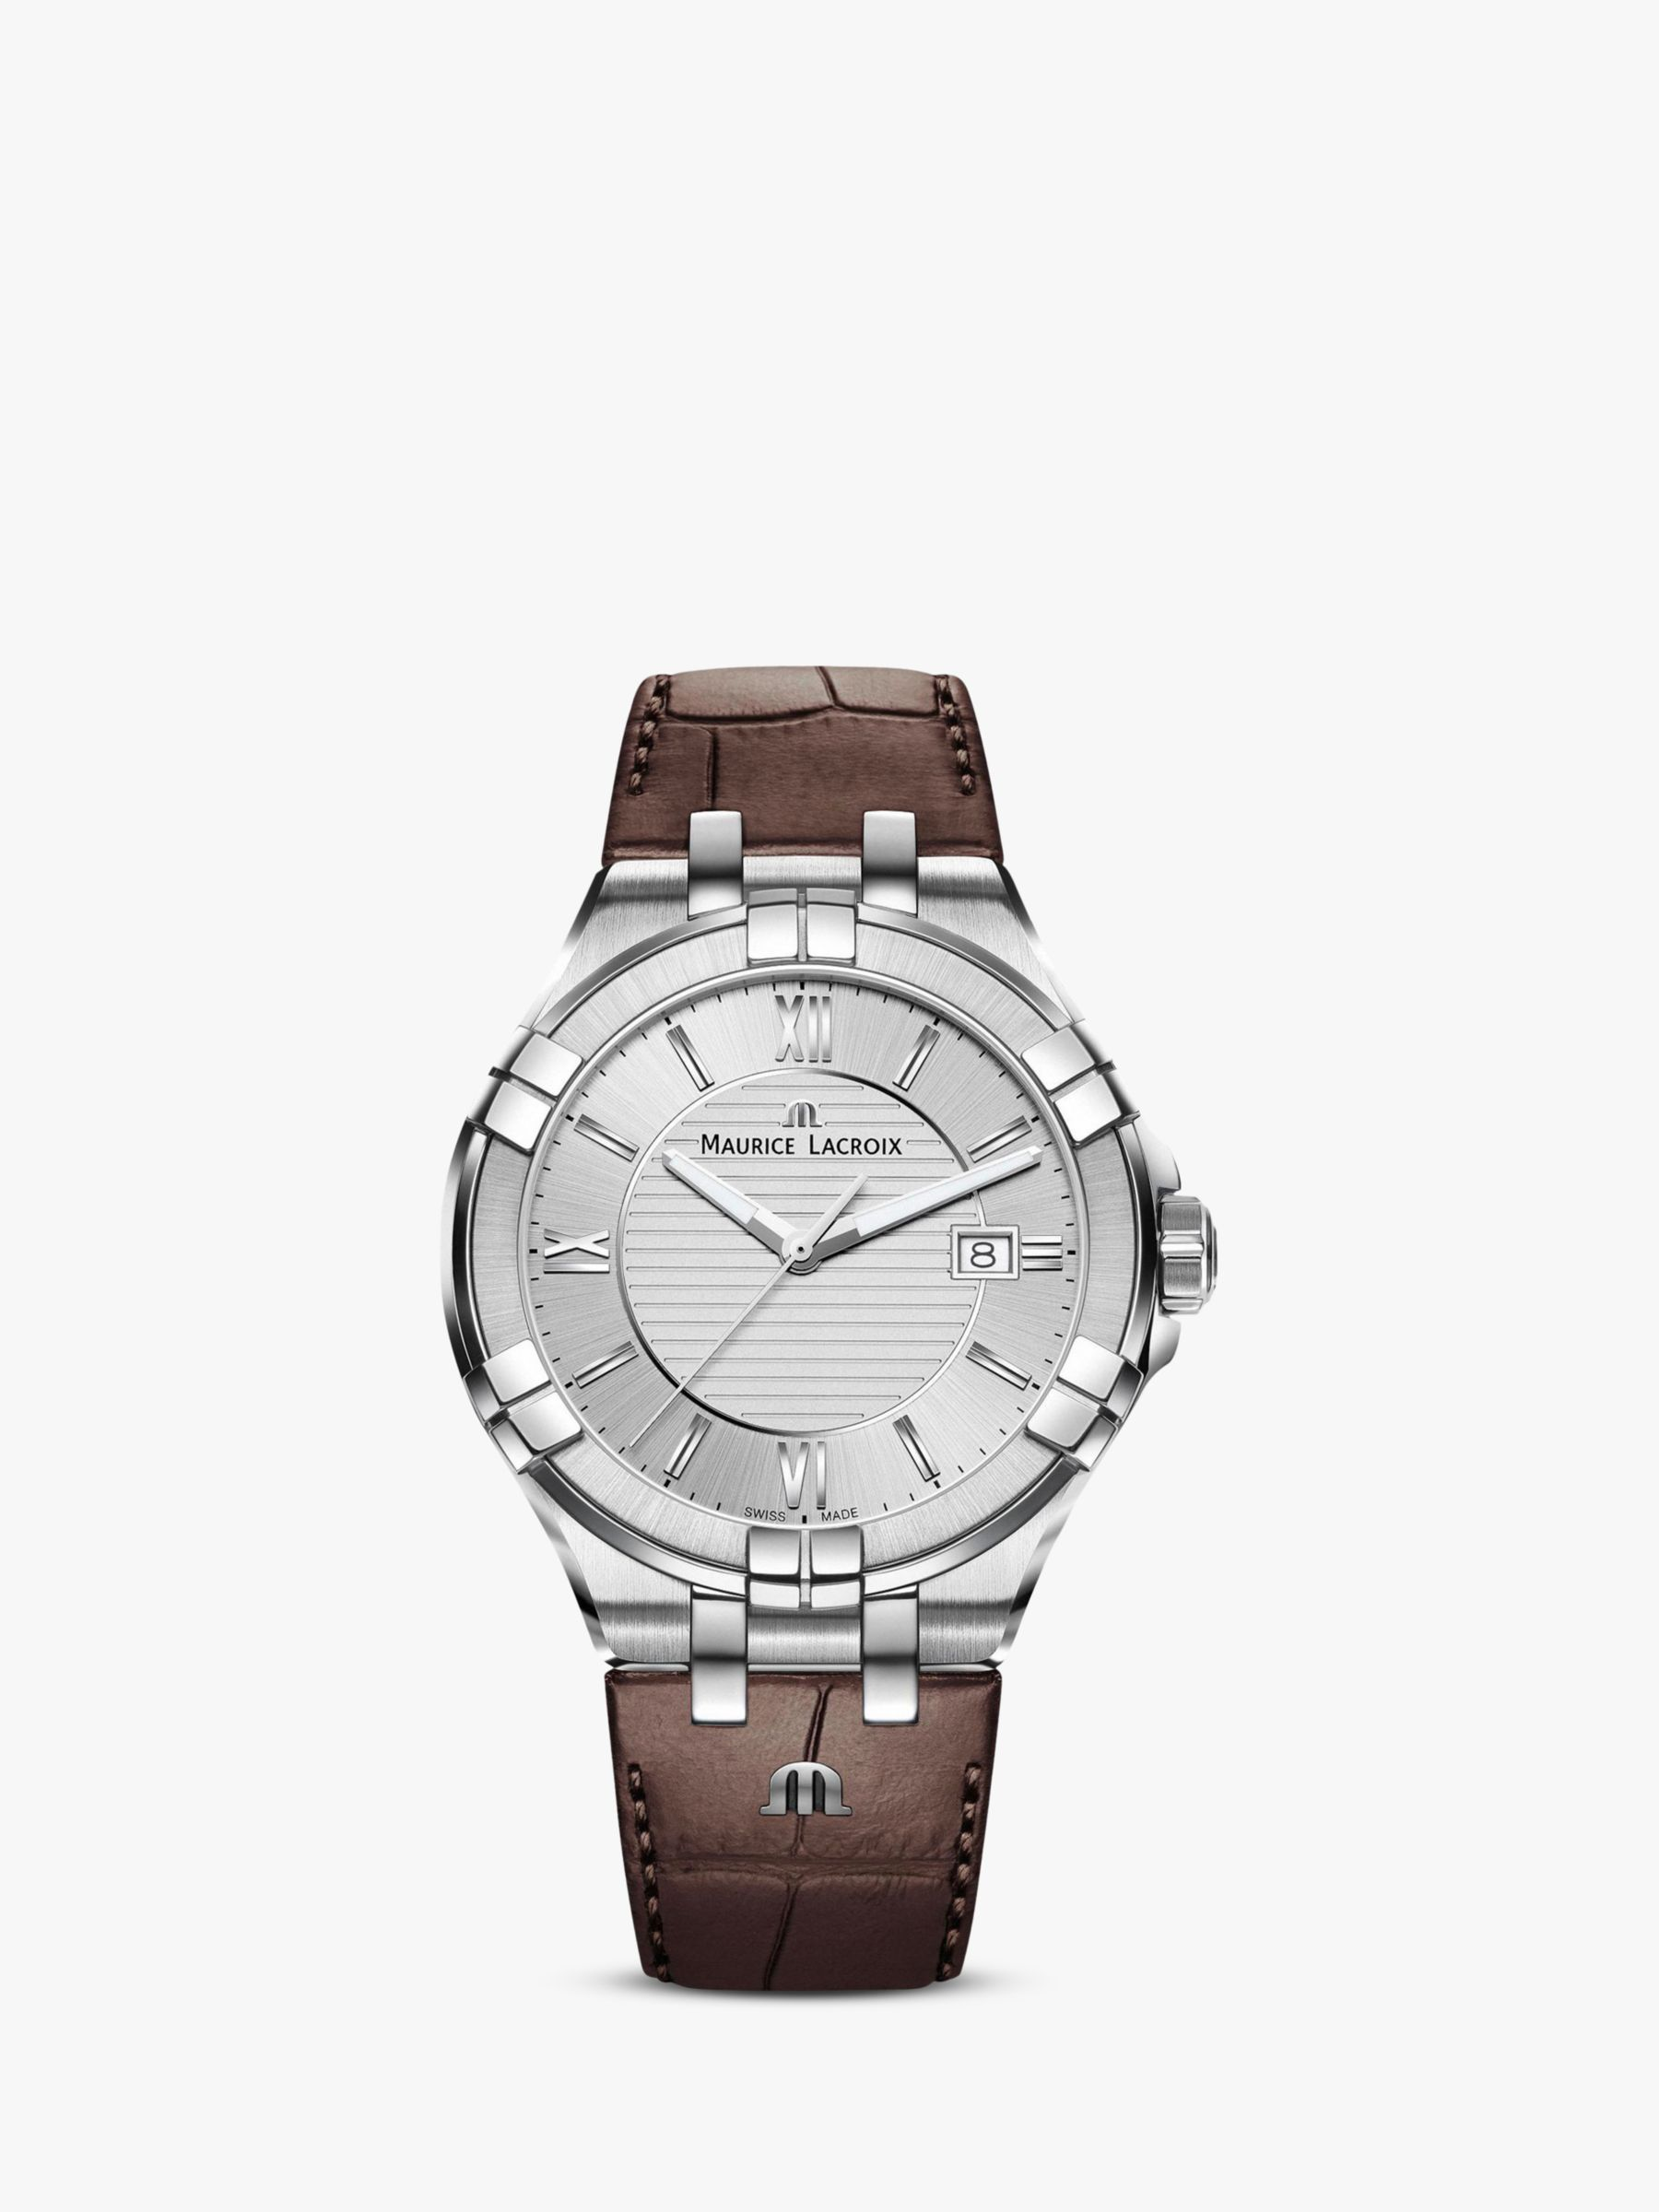 Maurice Lacroix Maurice Lacroix AI1008-SS001-130-1 Men's Aikon Date Leather Strap Watch, Brown/Silver